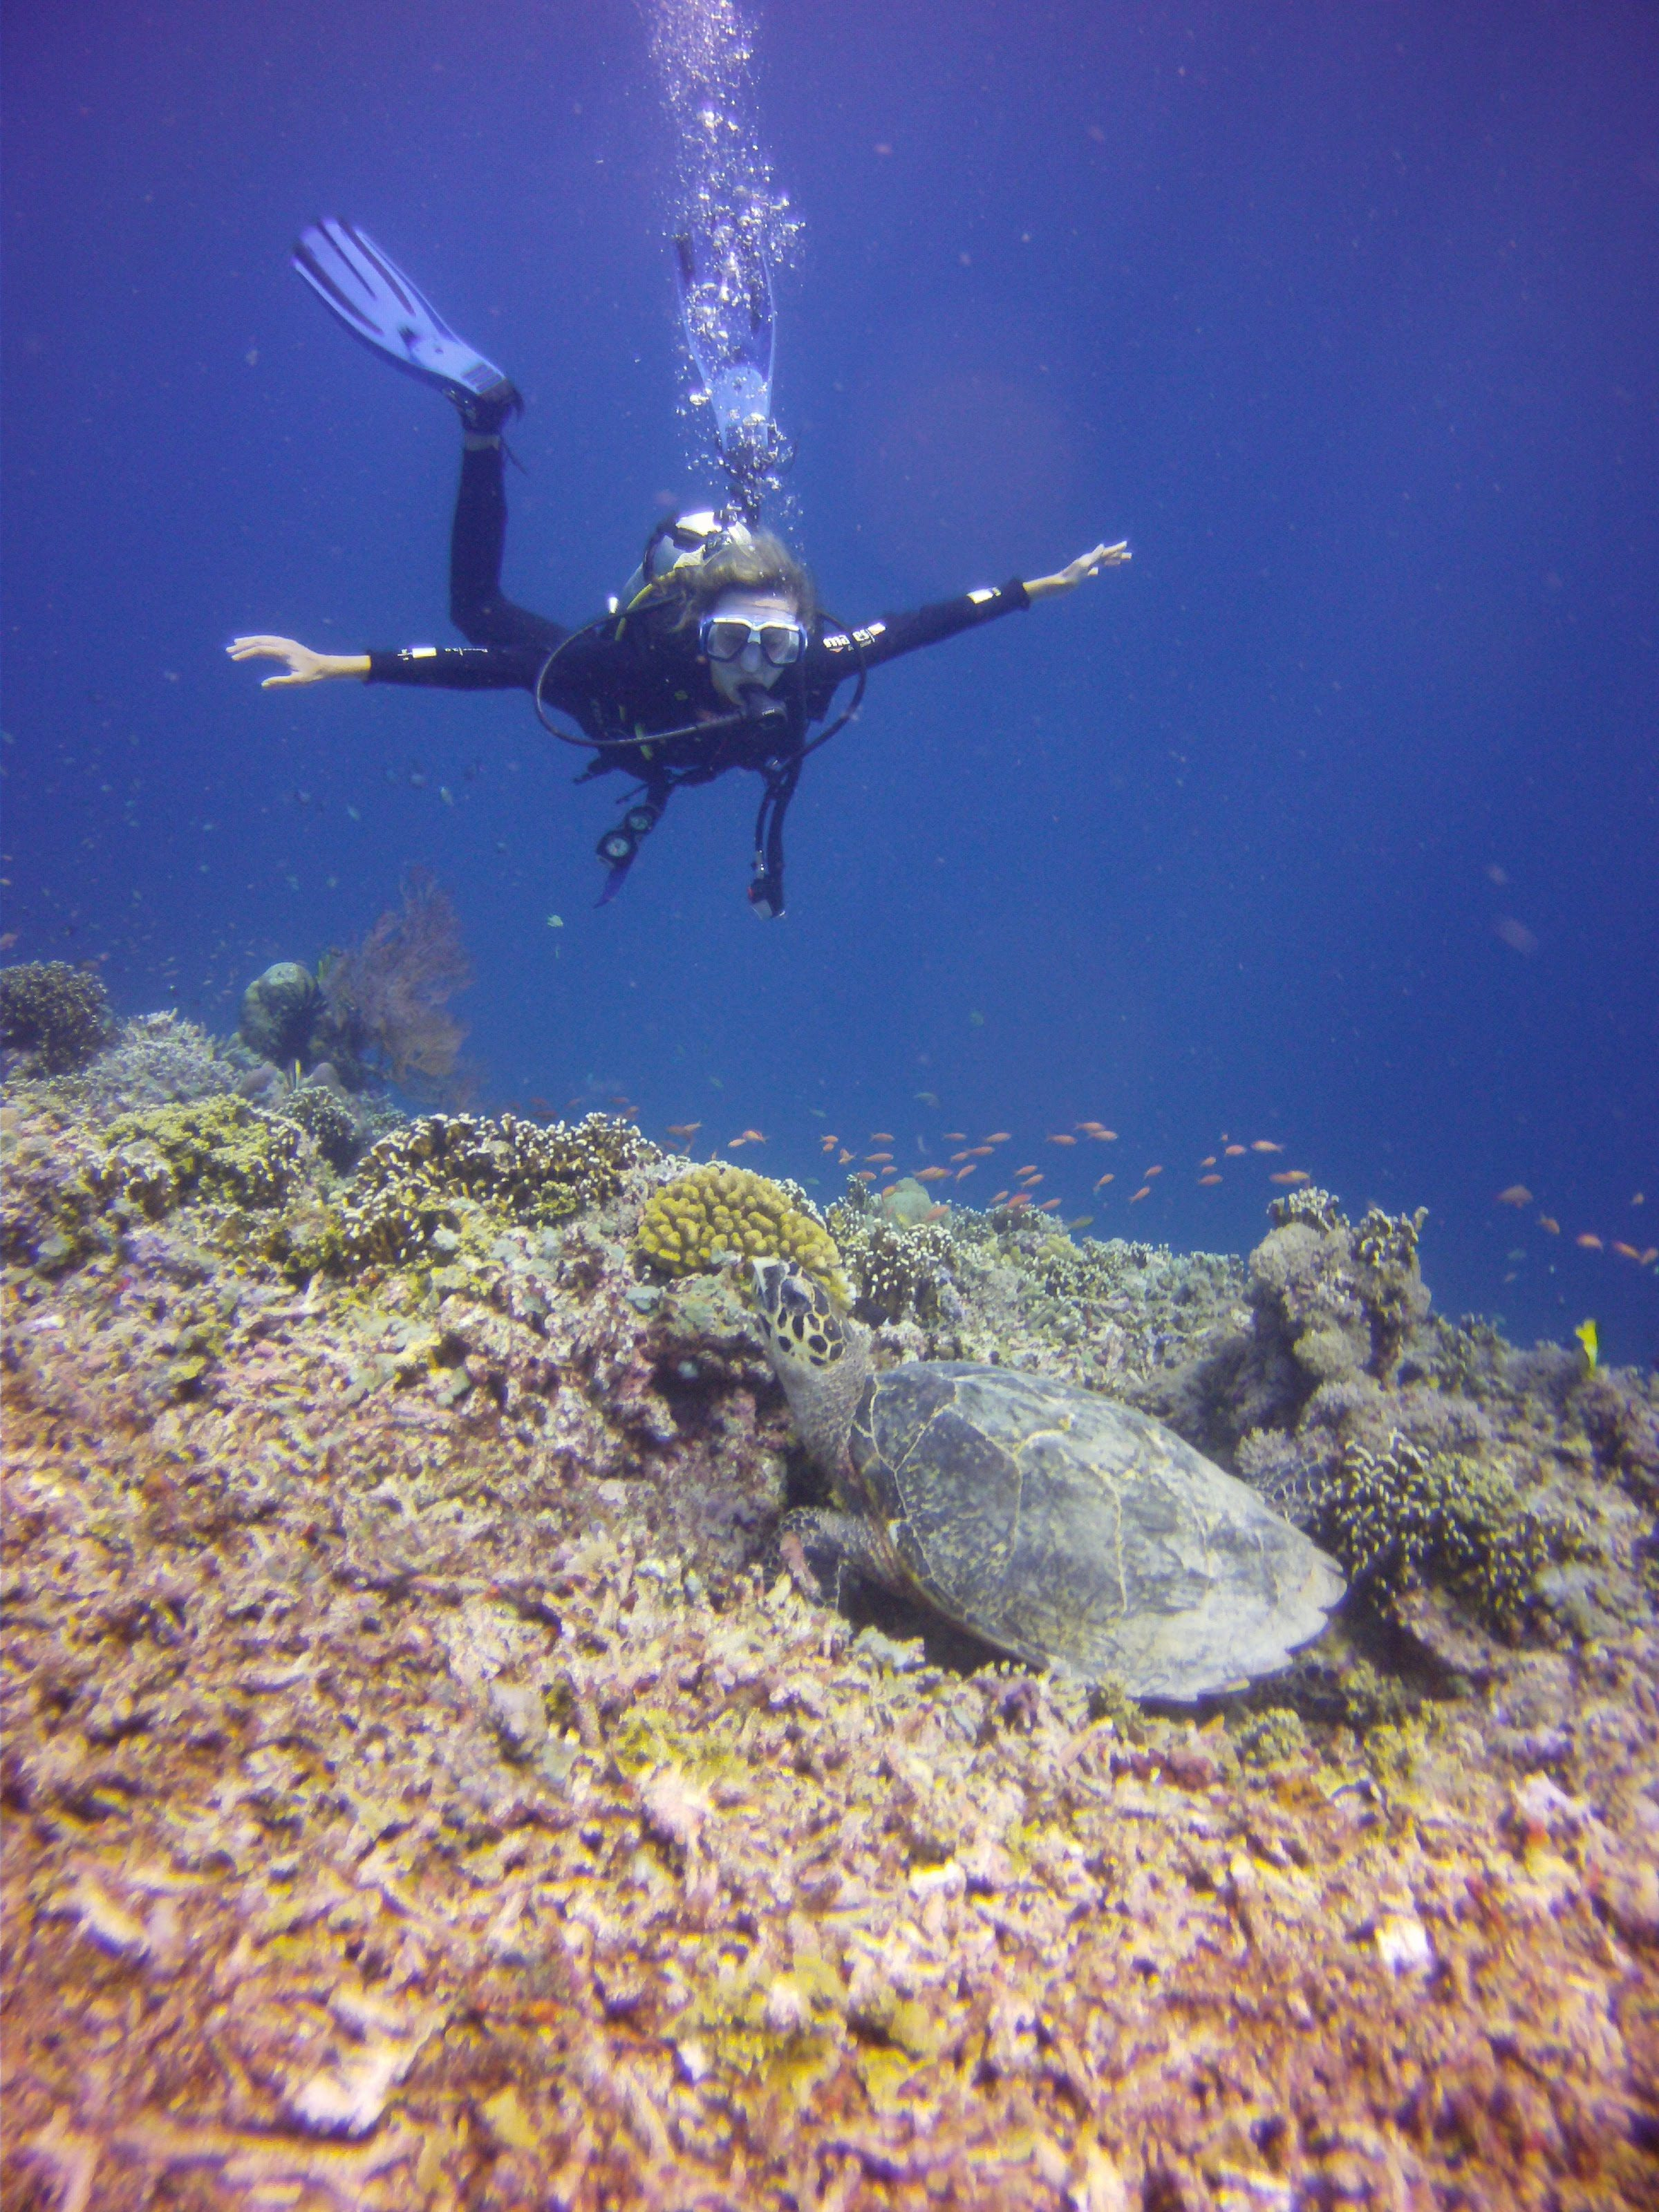 Diving with turtles in Gili Air Island - Indonesia